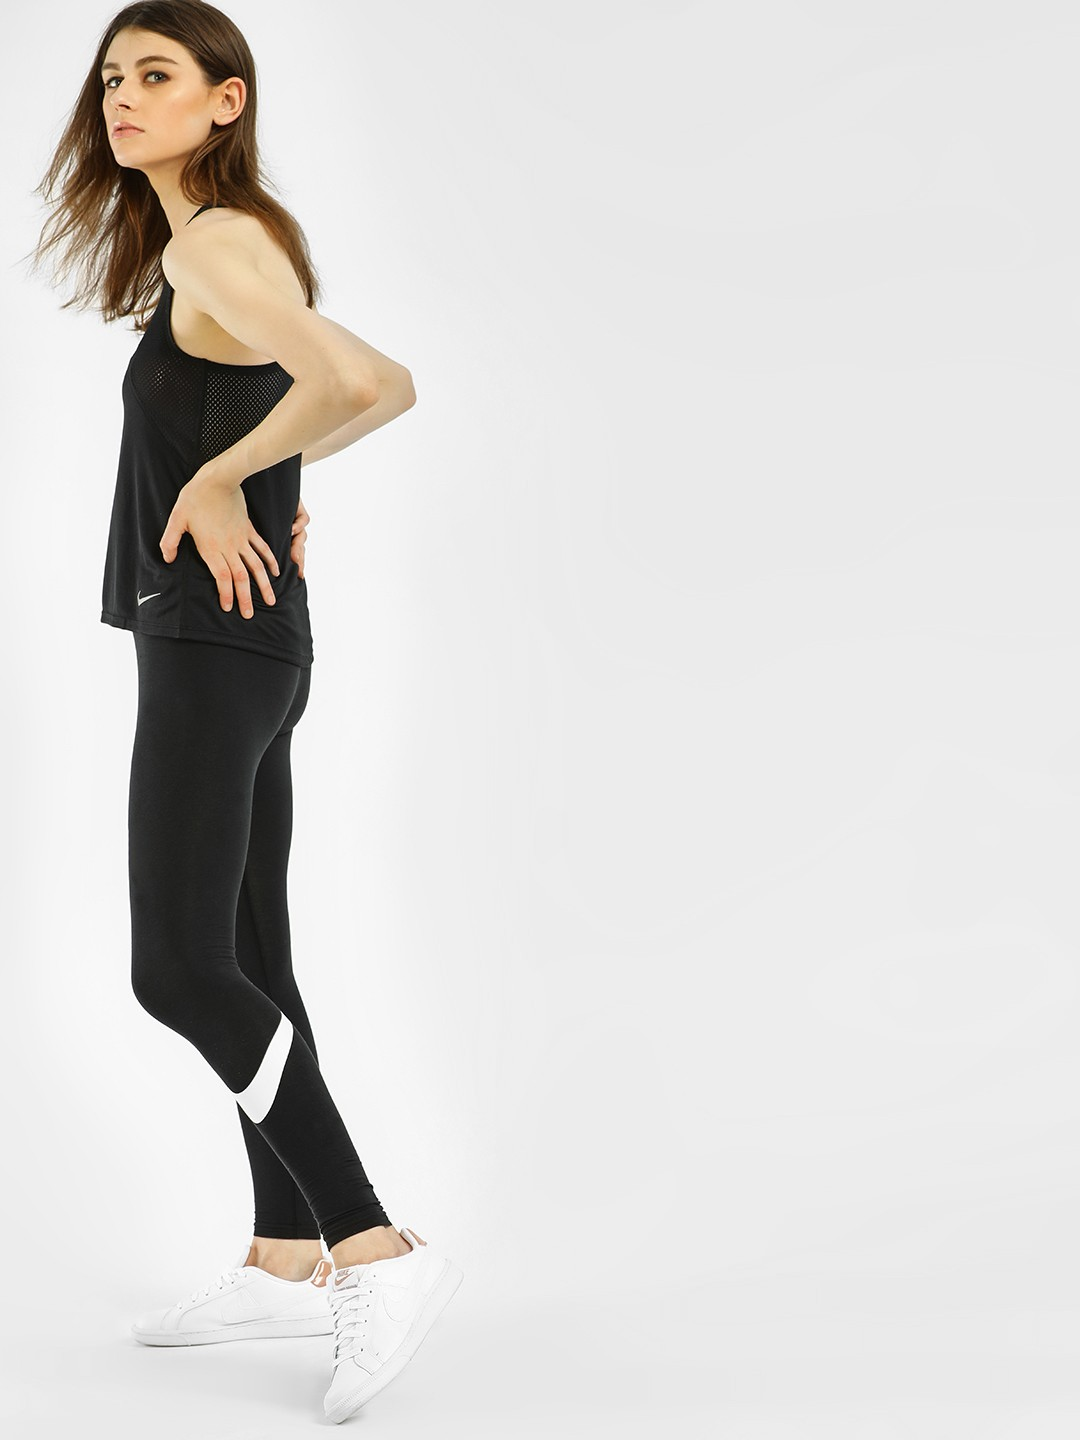 Nike Black AS Sportswear Leggings 1